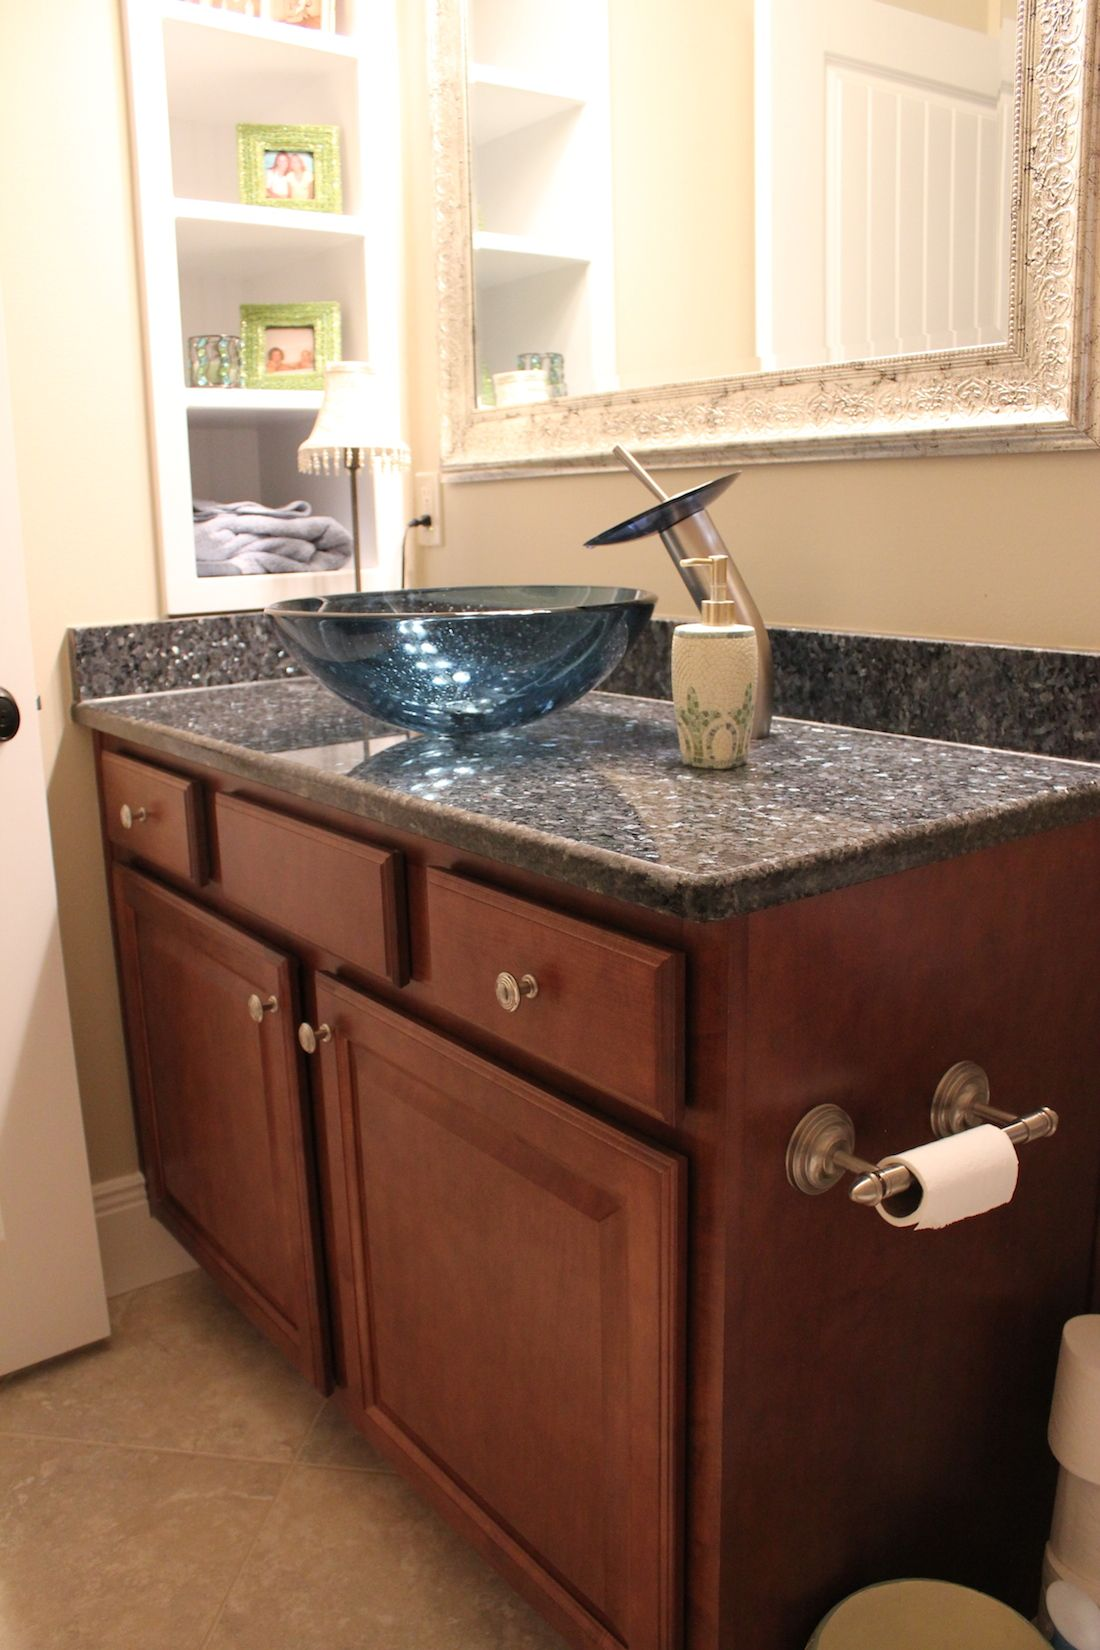 Wellborn Cabinetry Vanity, Solera Glass Sink Bowl And Matching Custom Faucet